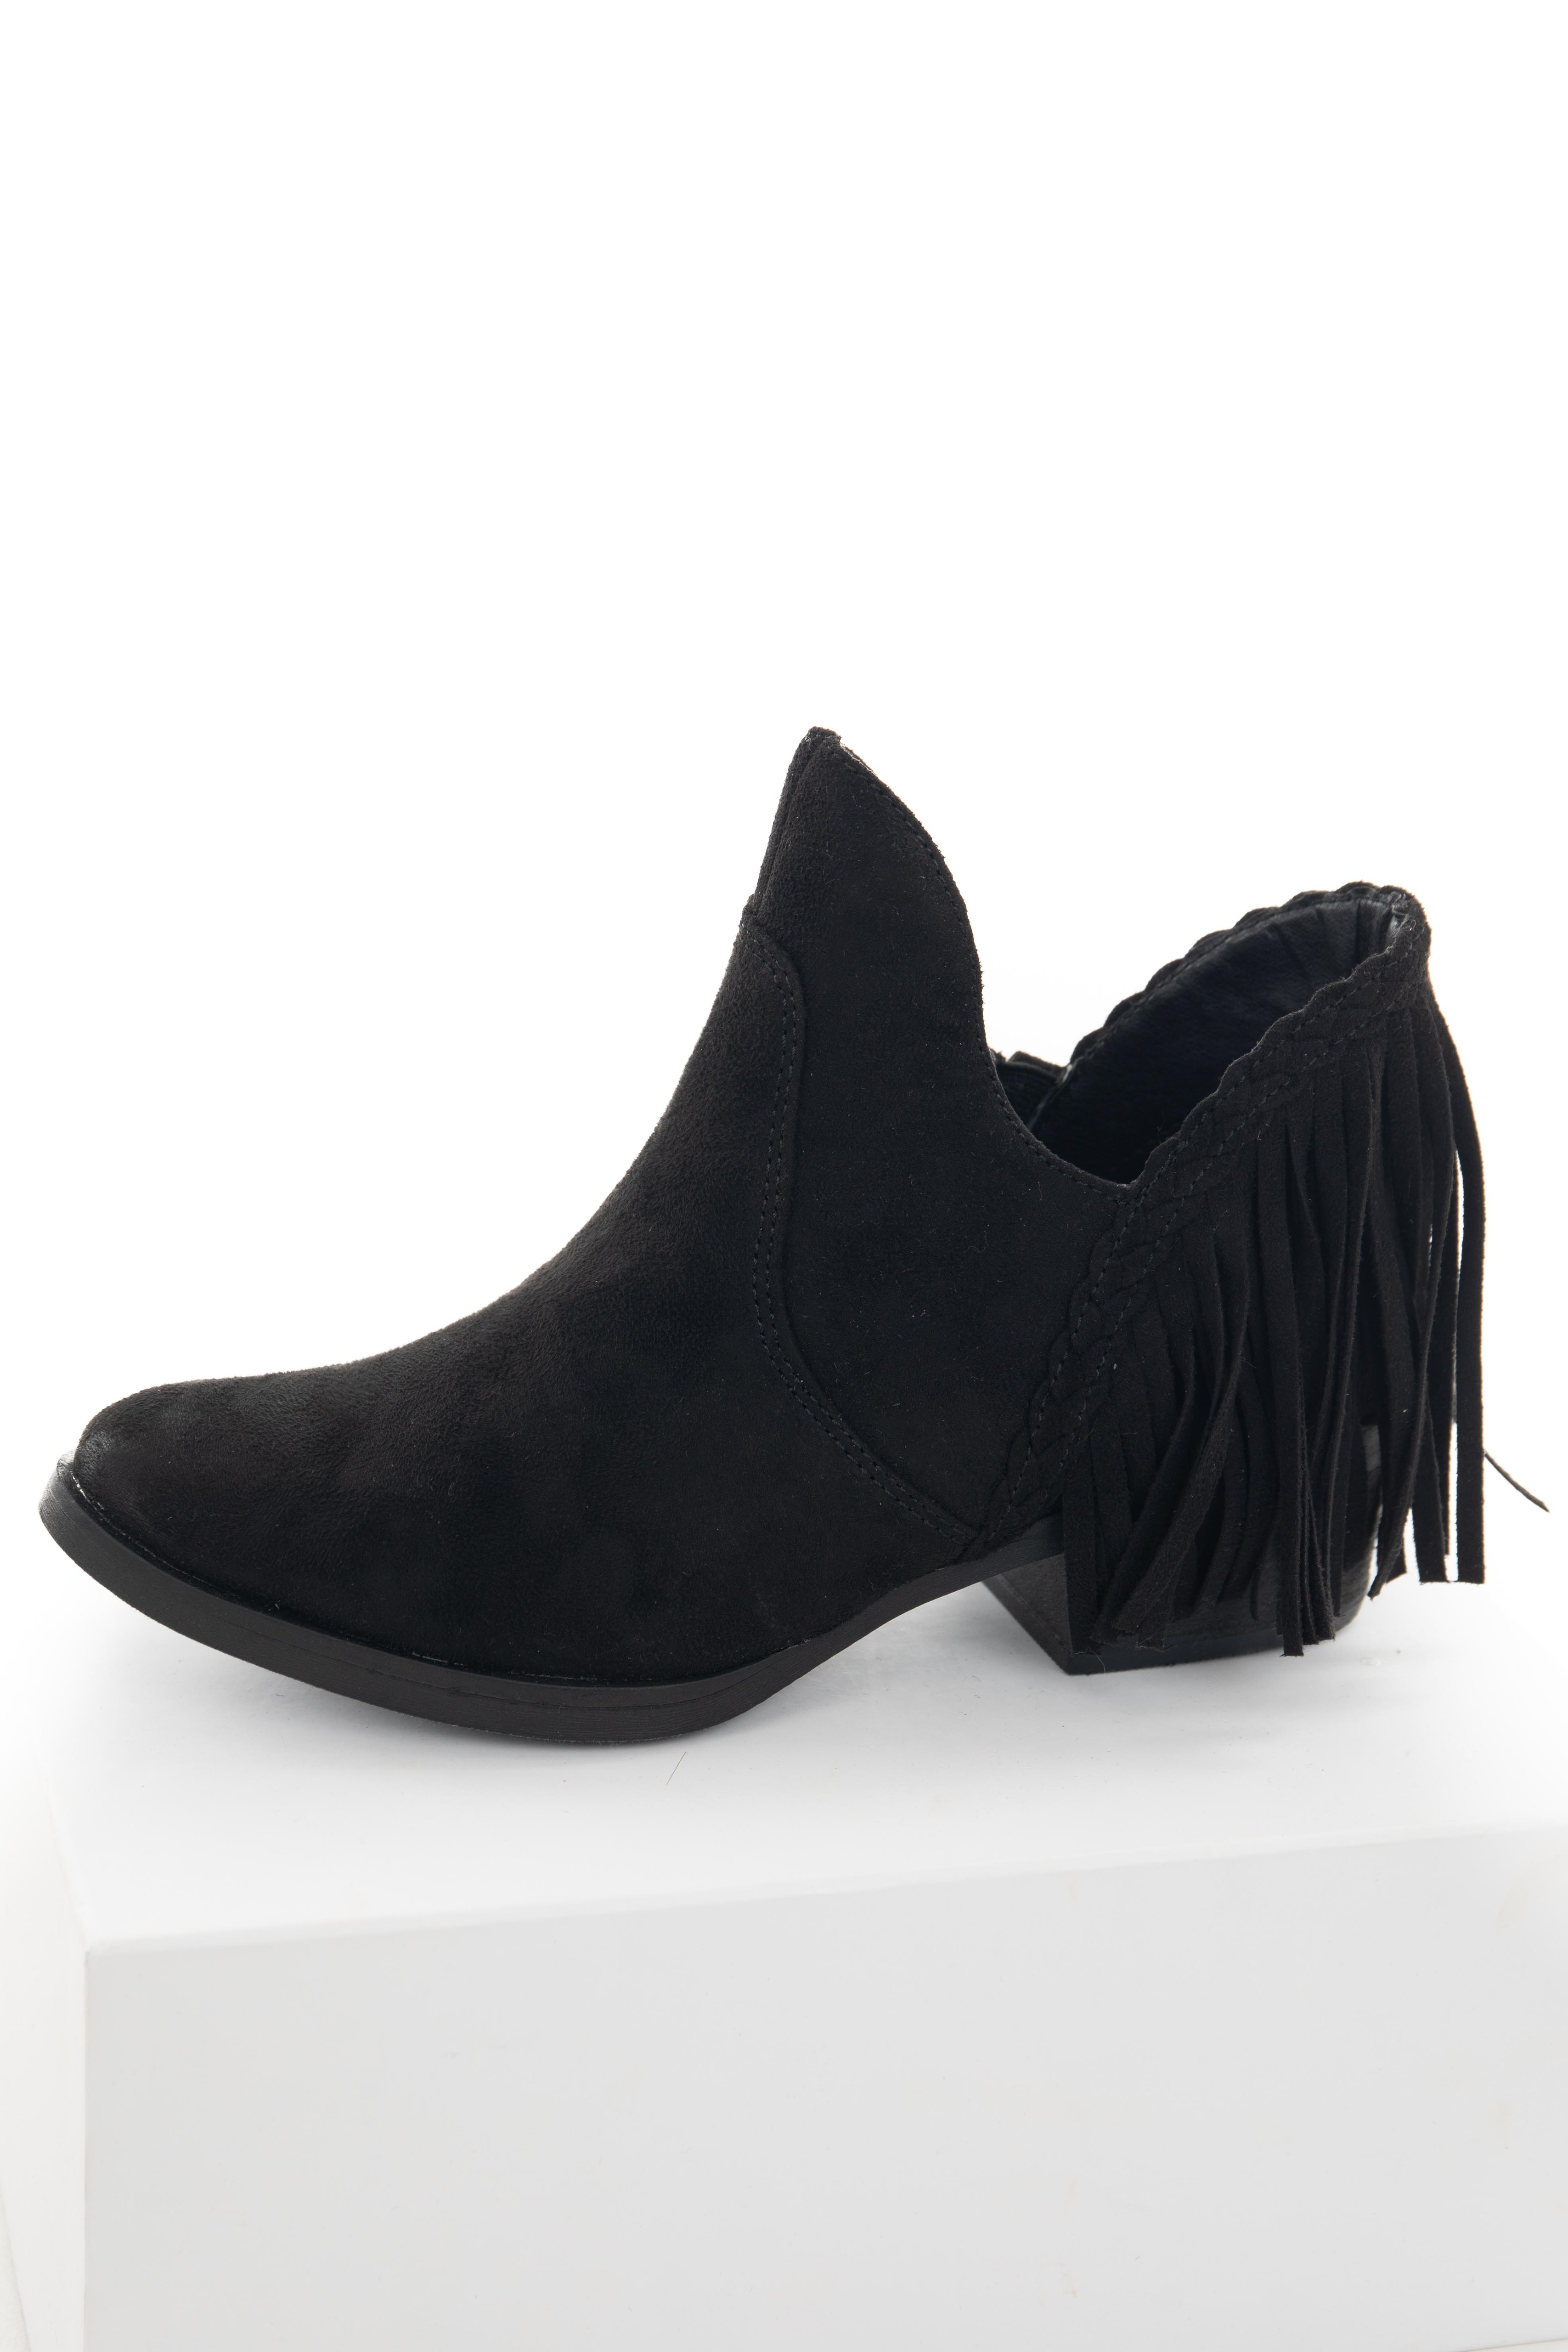 Black Plunging Ankle Booties with Fringe